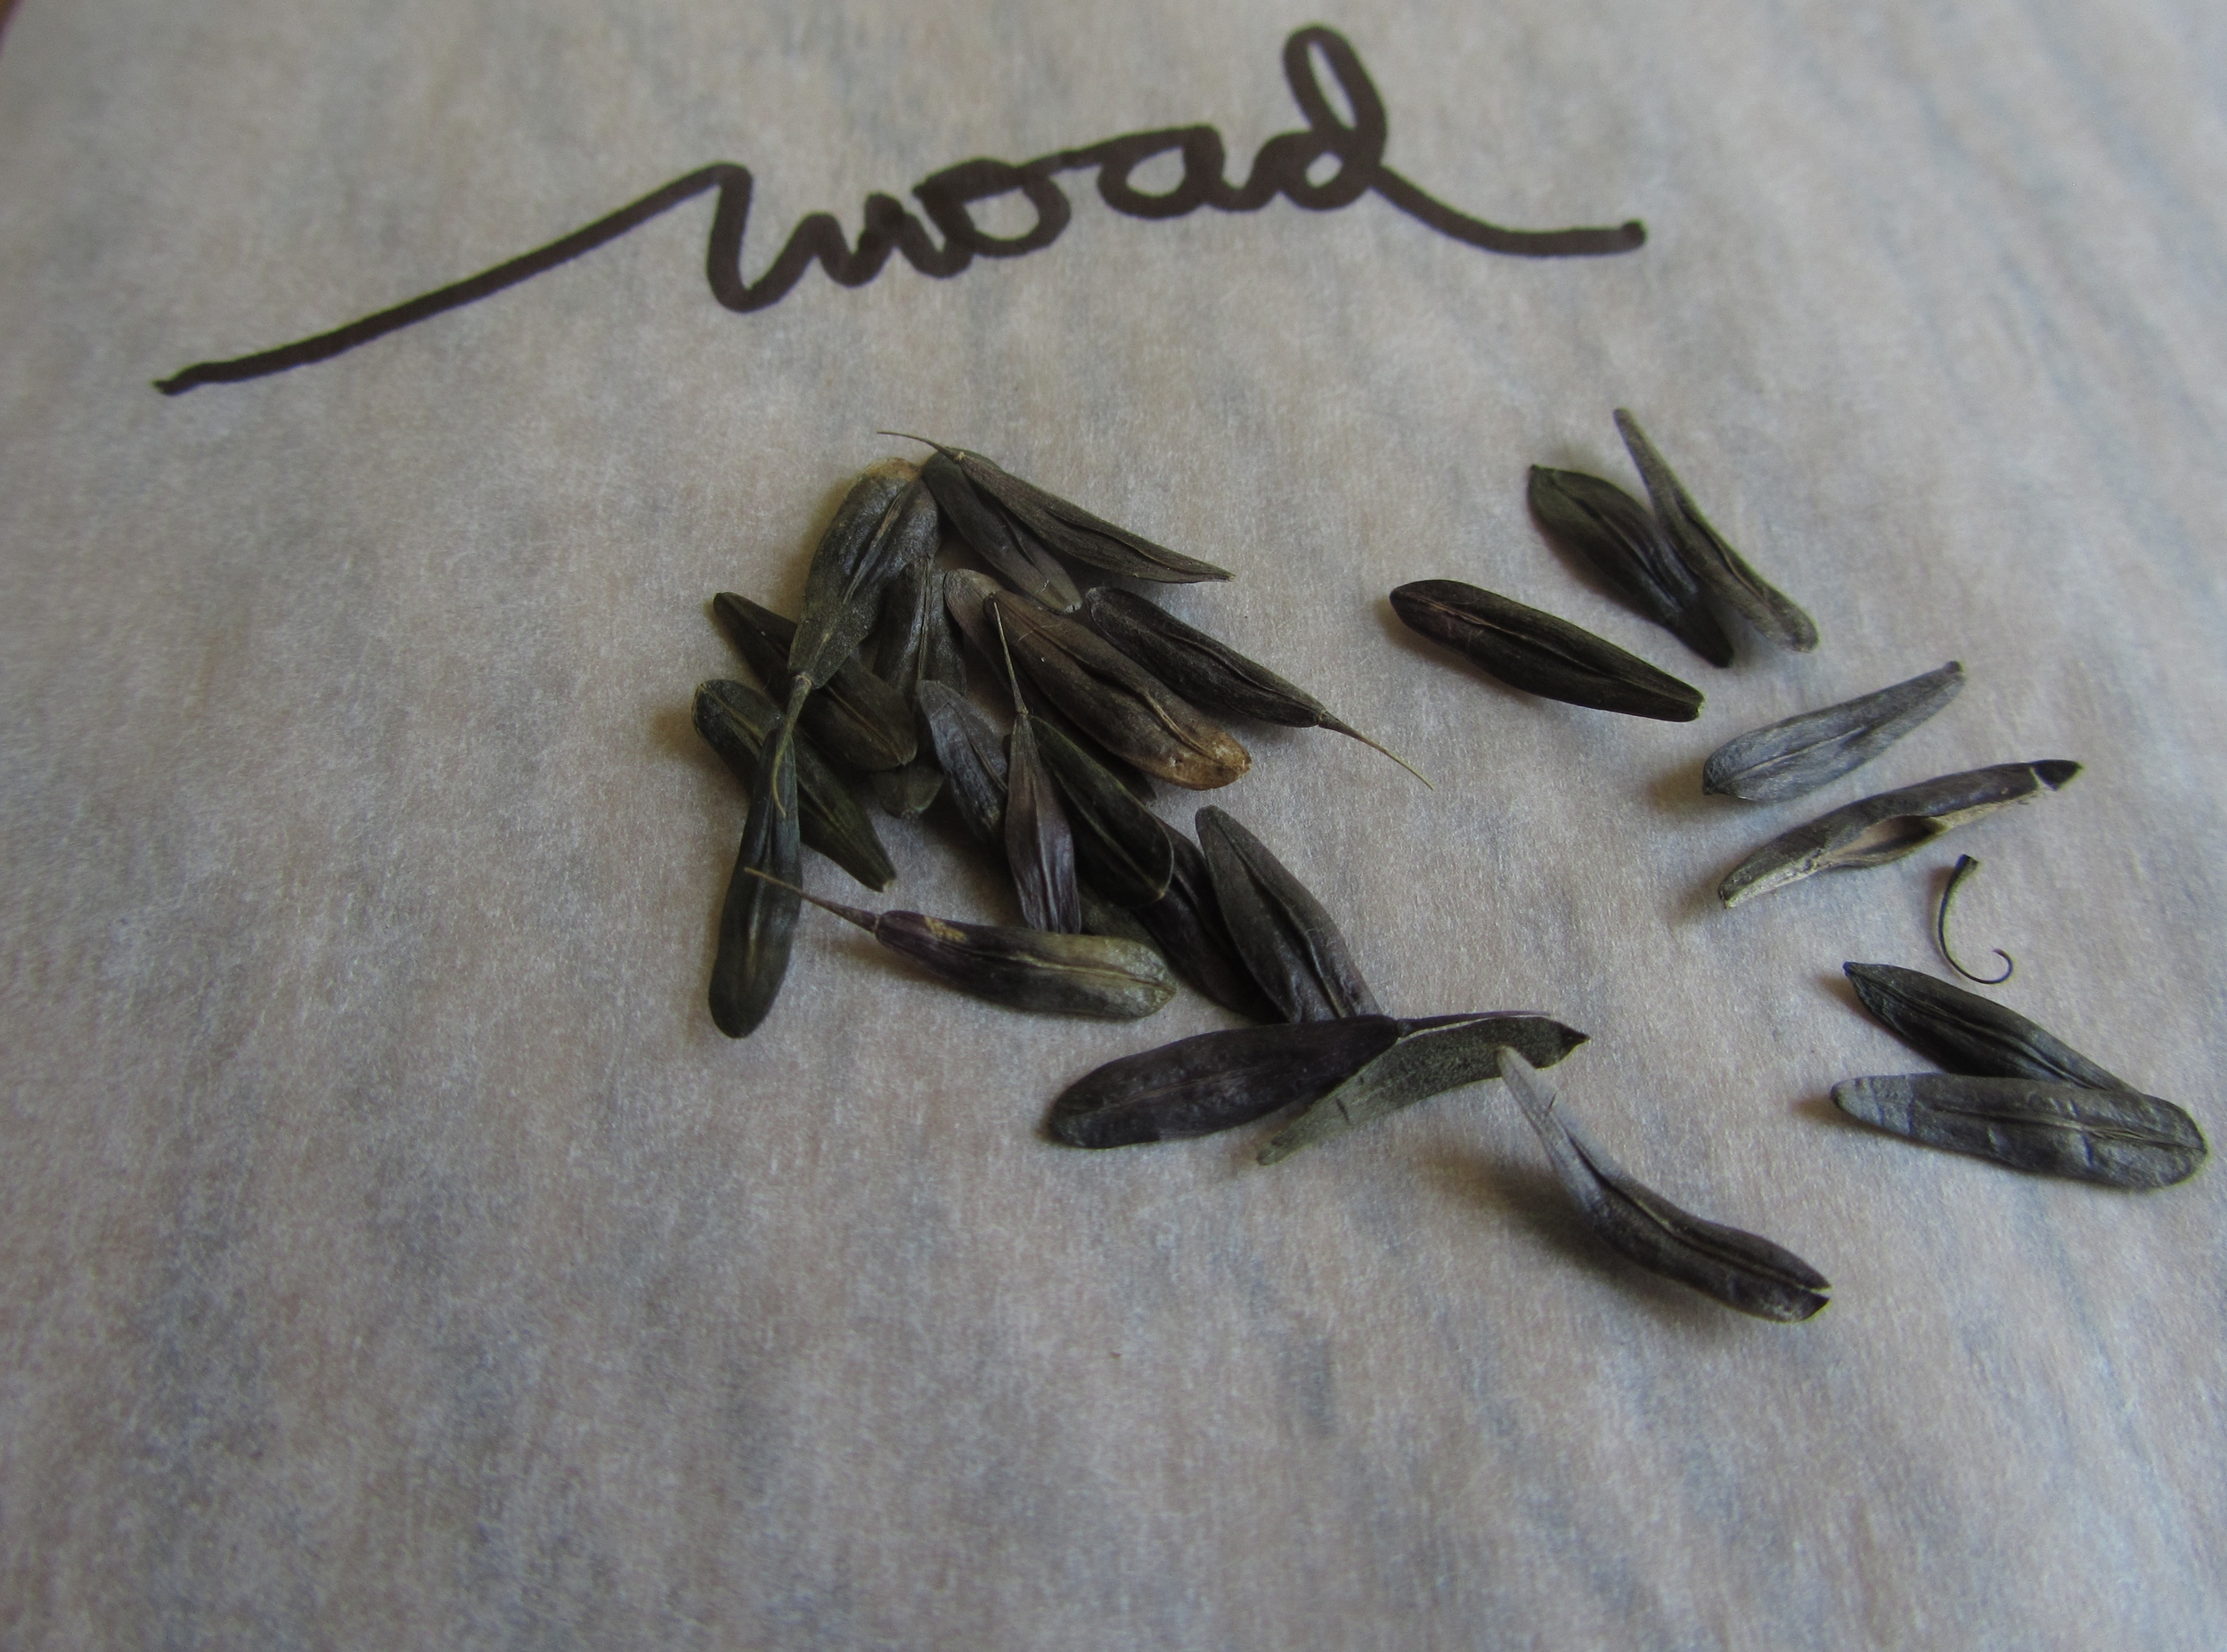 It's a bit difficult to discern from the photo, but the woad seeds have a subtle blue tone and they are shaped just like a woad leaf!